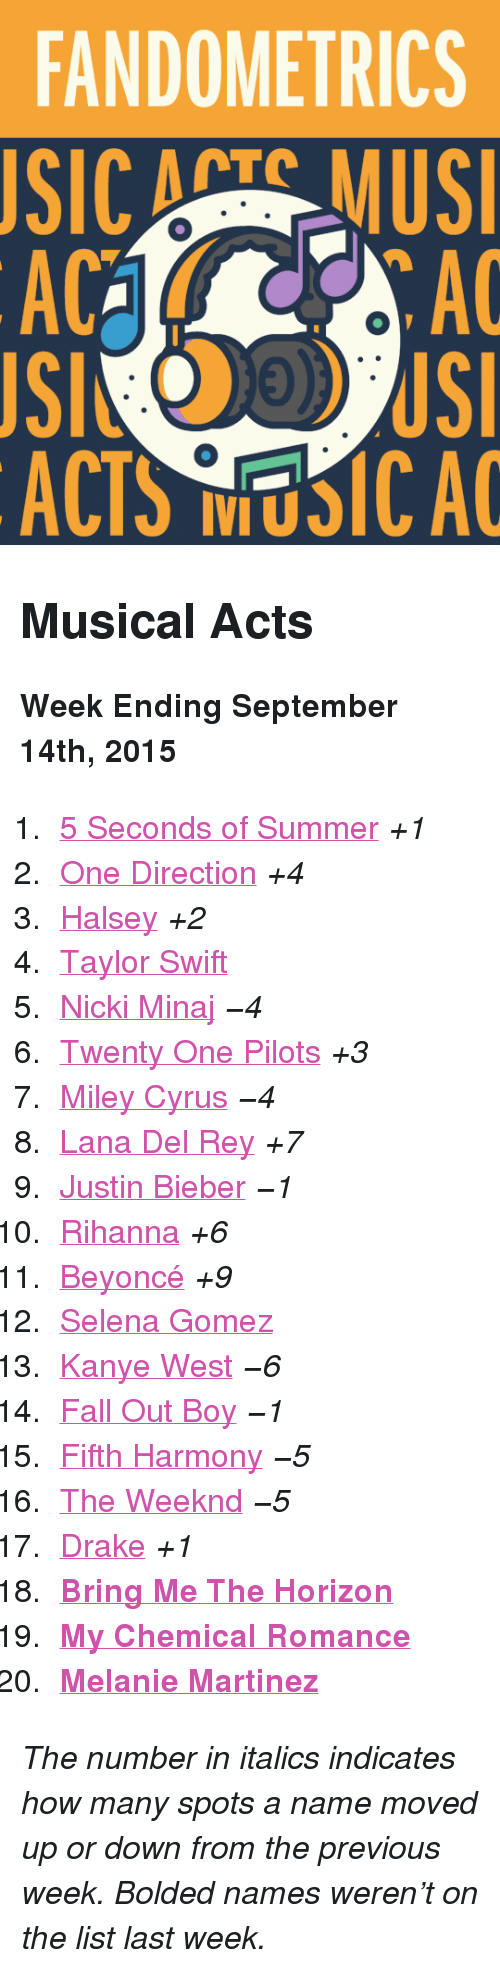 """Search: FANDOMETRICS  SIC ATS MUS  AC  AC  ACTS NUSICA <h2>Musical Acts</h2><p><b>Week Ending September 14th, 2015</b></p><ol><li><a href=""""http://www.tumblr.com/search/5sos"""">5 Seconds of Summer</a><i>+1</i></li>  <li><a href=""""http://www.tumblr.com/search/one%20direction"""">One Direction</a><i>+4</i></li>  <li><a href=""""http://www.tumblr.com/search/halsey"""">Halsey</a><i>+2</i></li>  <li><a href=""""http://www.tumblr.com/search/taylor%20swift"""">Taylor Swift</a></li>  <li><a href=""""http://www.tumblr.com/search/nicki%20minaj"""">Nicki Minaj</a><i>−4</i></li>  <li><a href=""""http://www.tumblr.com/search/twenty%20one%20pilots"""">Twenty One Pilots</a><i>+3</i></li>  <li><a href=""""http://www.tumblr.com/search/miley%20cyrus"""">Miley Cyrus</a><i>−4</i></li>  <li><a href=""""http://www.tumblr.com/search/lana%20del%20rey"""">Lana Del Rey</a><i>+7</i></li>  <li><a href=""""http://www.tumblr.com/search/justin%20bieber"""">Justin Bieber</a><i>−1</i></li>  <li><a href=""""http://www.tumblr.com/search/rihanna"""">Rihanna</a><i>+6</i></li>  <li><a href=""""http://www.tumblr.com/search/beyonce"""">Beyoncé</a><i>+9</i></li>  <li><a href=""""http://www.tumblr.com/search/selena%20gomez"""">Selena Gomez</a></li>  <li><a href=""""http://www.tumblr.com/search/kanye%20west"""">Kanye West</a><i>−6</i></li>  <li><a href=""""http://www.tumblr.com/search/fall%20out%20boy"""">Fall Out Boy</a><i>−1</i></li>  <li><a href=""""http://www.tumblr.com/search/fifth%20harmony"""">Fifth Harmony</a><i>−5</i></li>  <li><a href=""""http://www.tumblr.com/search/the%20weeknd"""">The Weeknd</a><i>−5</i></li>  <li><a href=""""http://www.tumblr.com/search/drake"""">Drake</a><i>+1</i></li>  <li><a href=""""http://www.tumblr.com/search/bring%20me%20the%20horizon""""><b>Bring Me The Horizon</b></a></li>  <li><a href=""""http://www.tumblr.com/search/mcr""""><b>My Chemical Romance</b></a></li>  <li><a href=""""http://www.tumblr.com/search/melanie%20martinez""""><b>Melanie Martinez</b></a></li></ol><p><i>The number in italics indicates how many spots a name moved up or down from the previous week. Bolded names were"""